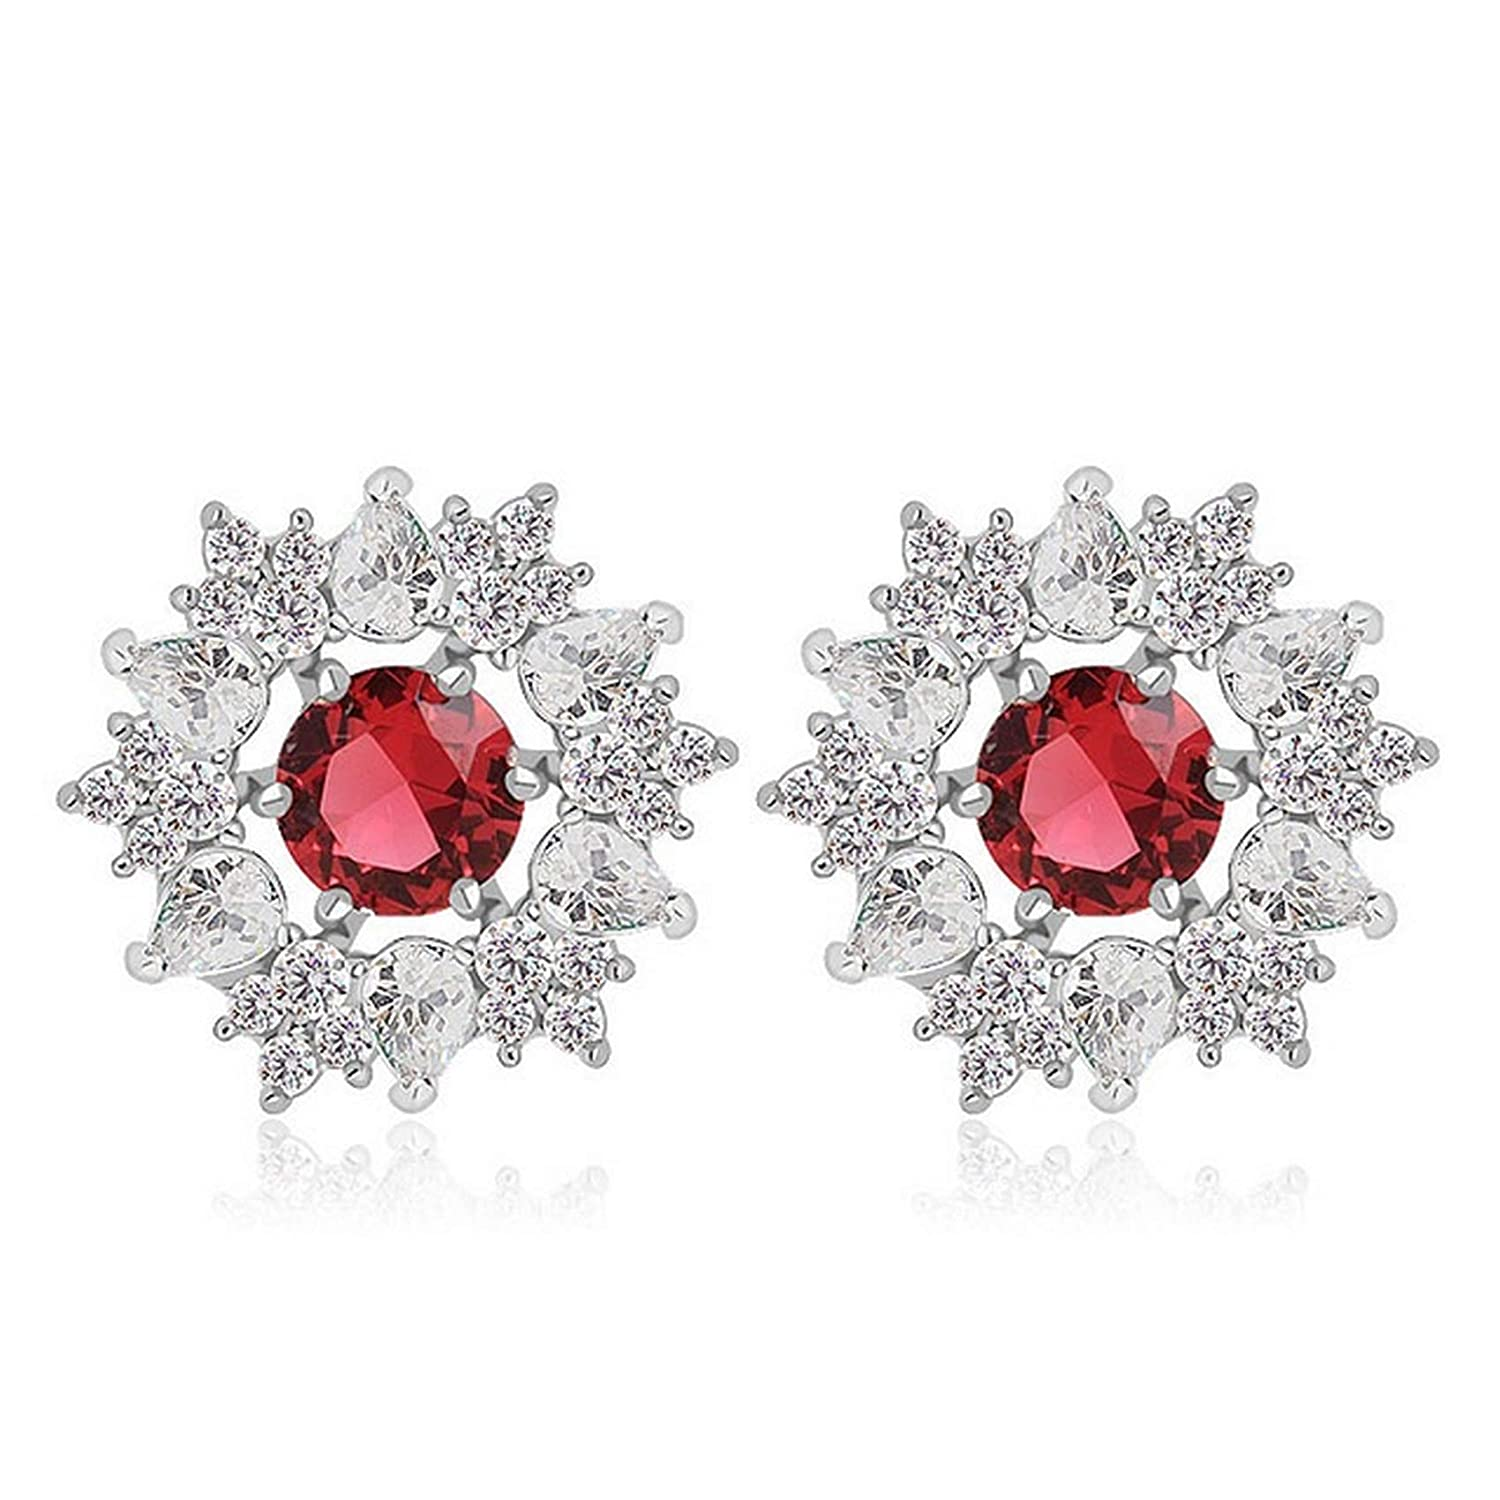 Silver Earrings By CS-DB Waterdrop Round Clear Red Cubic Zircon Big Shild Stud Earrings For Womens